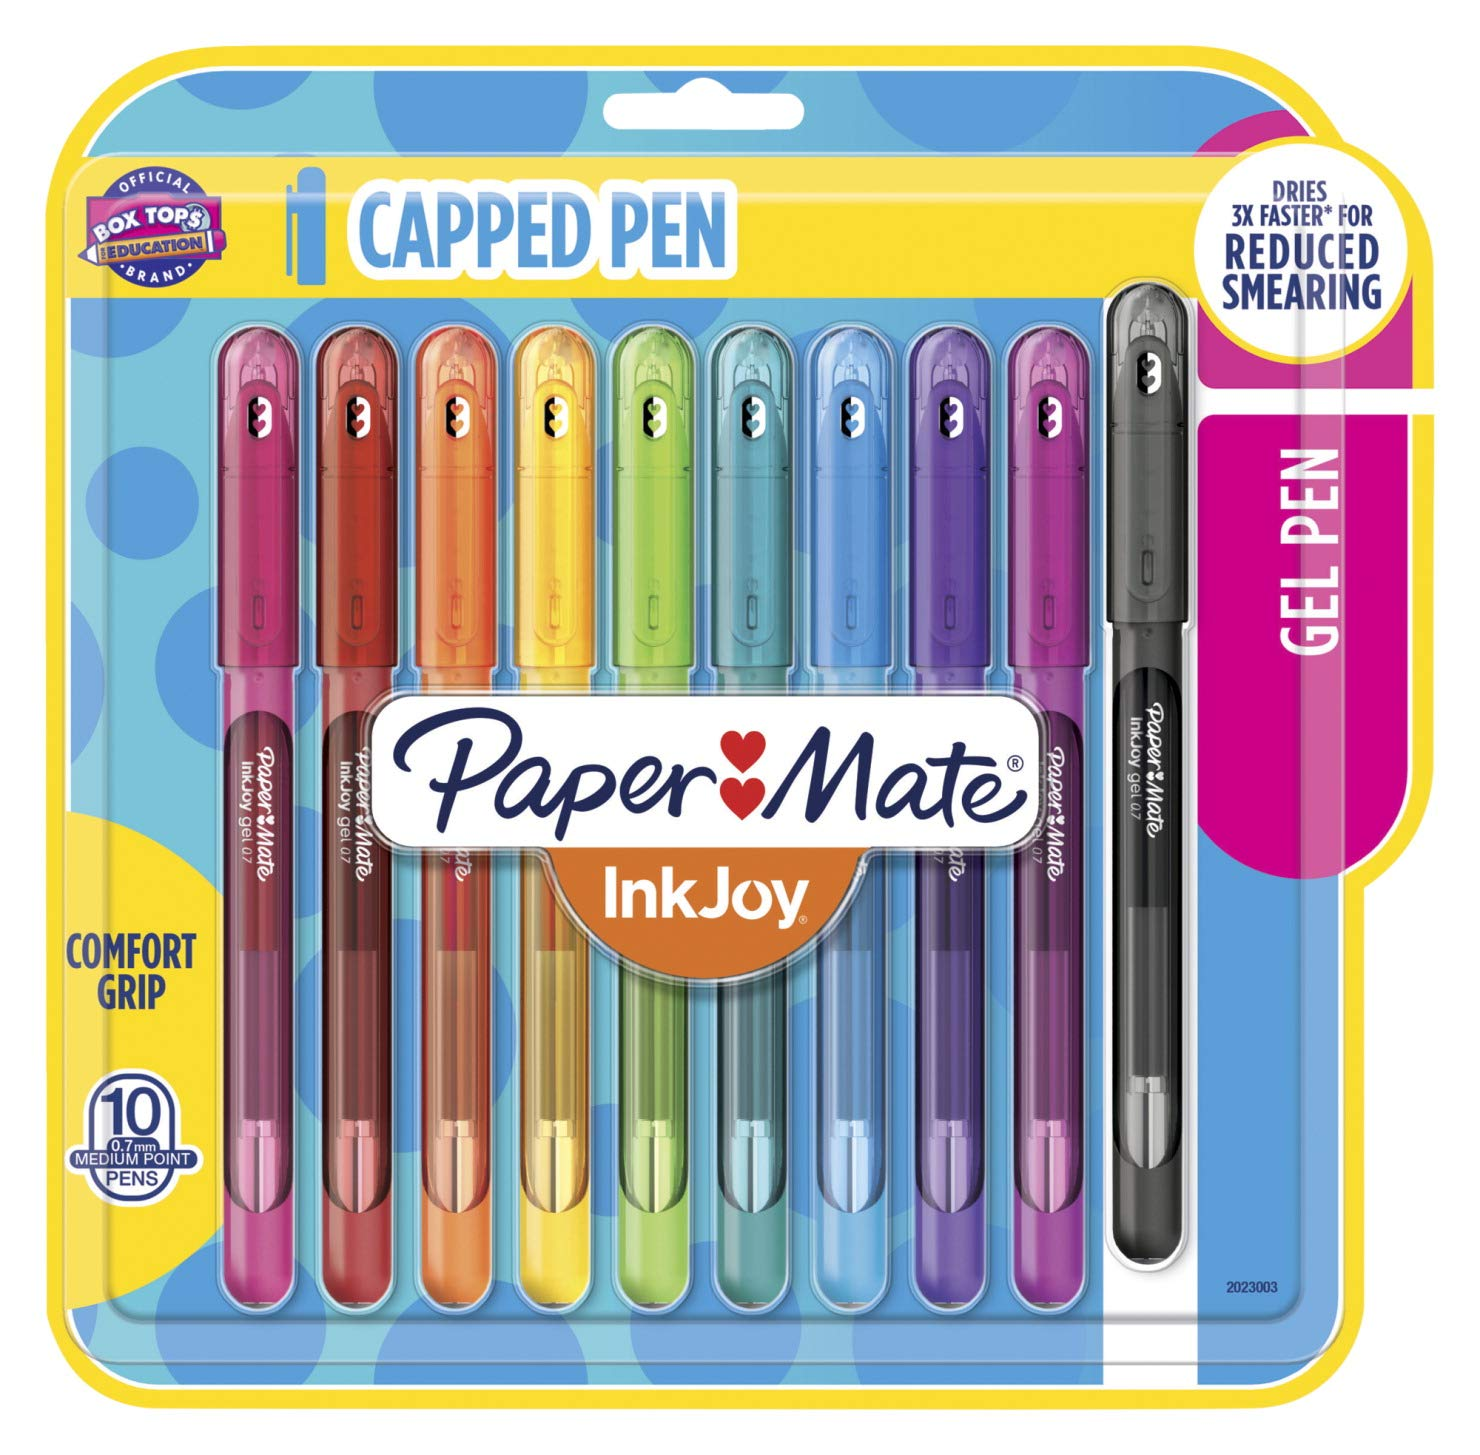 Paper Mate InkJoy Gel Pens Medium Point (0.7mm) Capped, 10 Count, Assorted Colors (2023003)